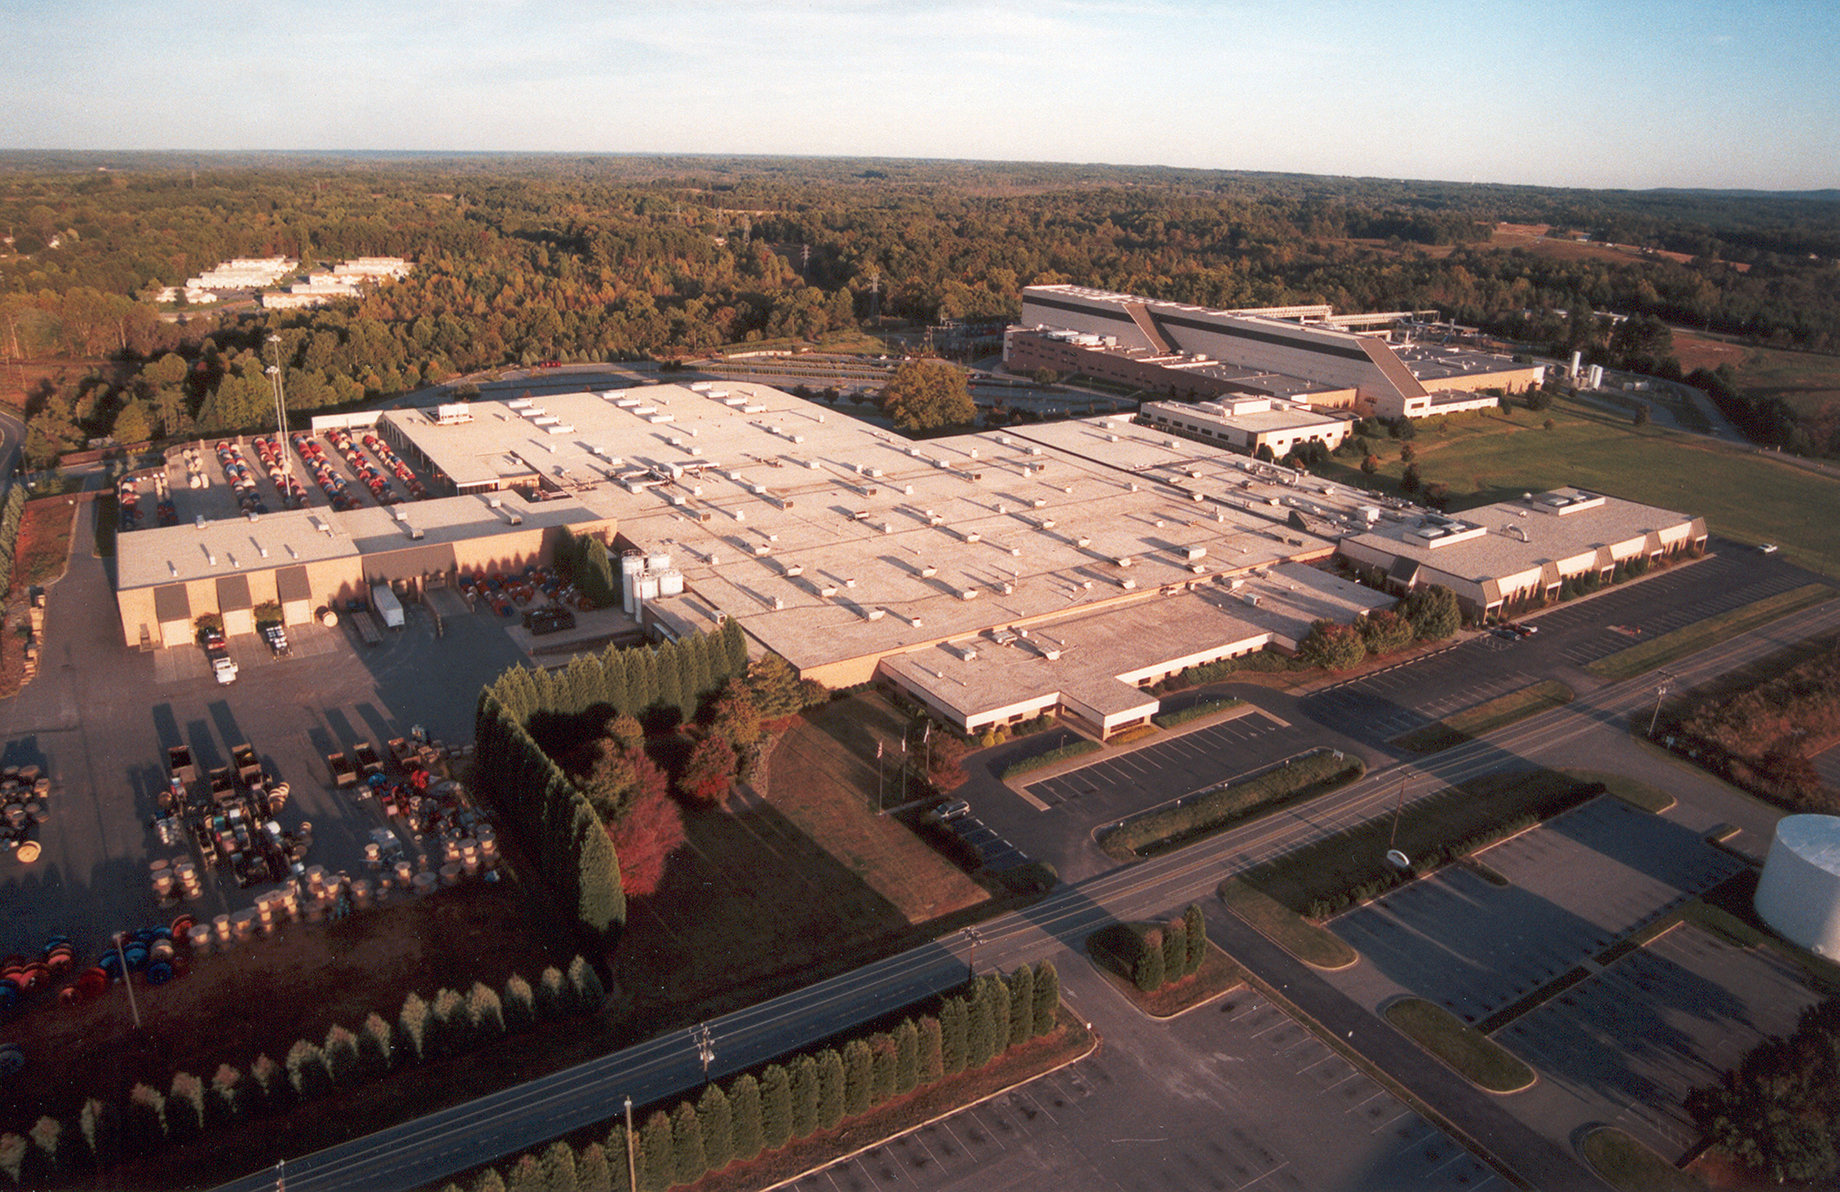 Since 2014, Prysmian has invested $79 million and added 120 jobs at their Claremont facility.